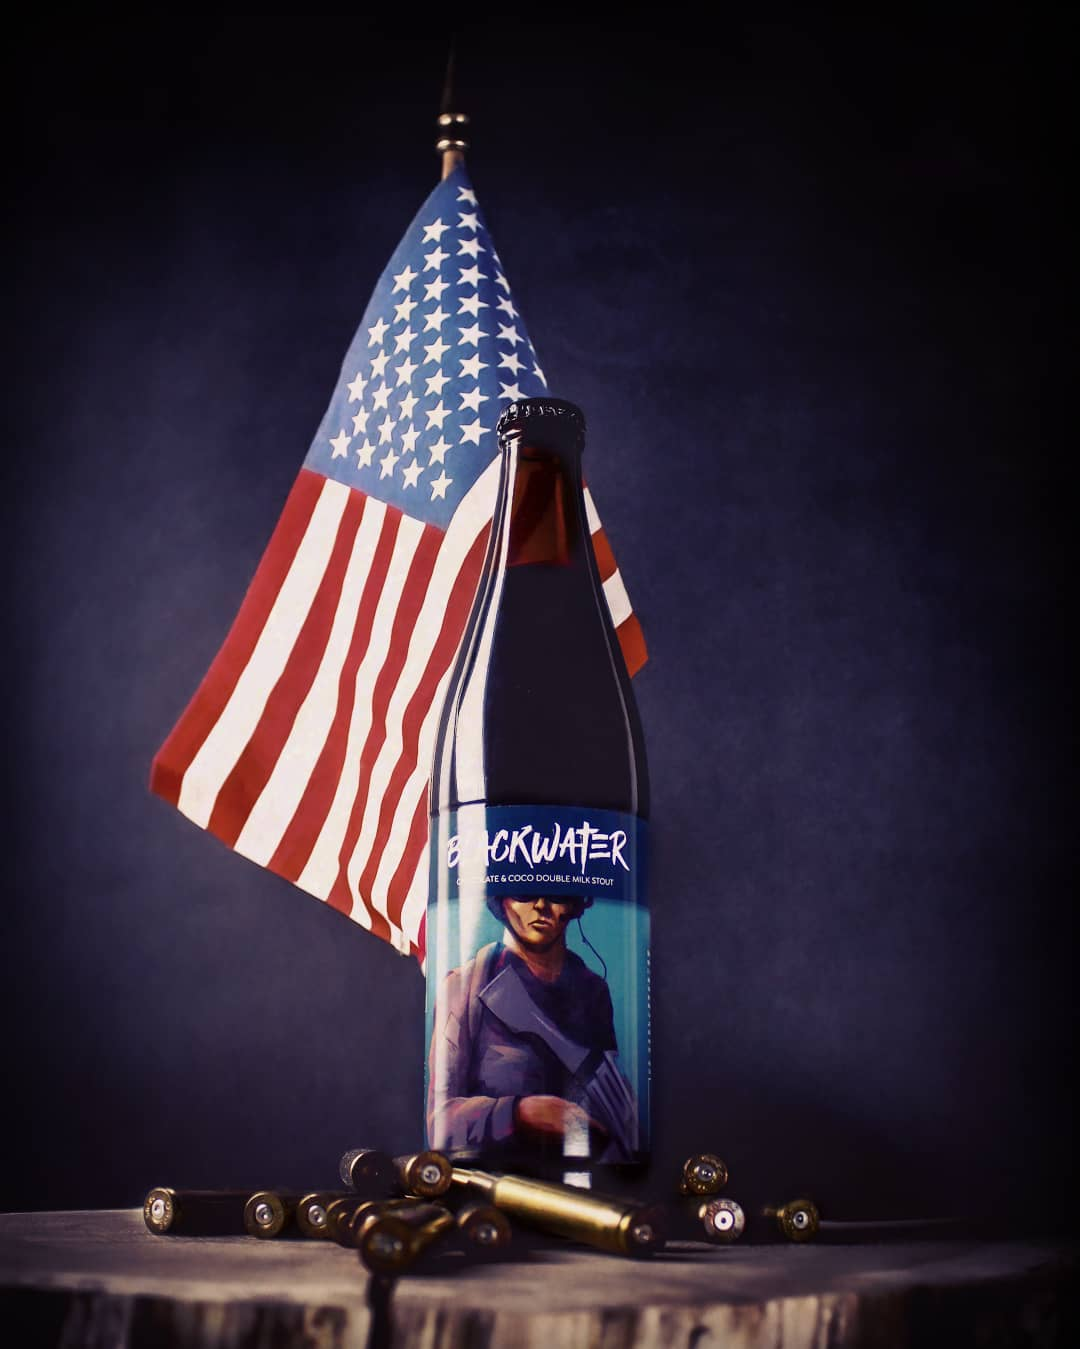 Blackwater - beer bottle photo in american style with flag and bullets by Kraftowe and Jakub Cichecki